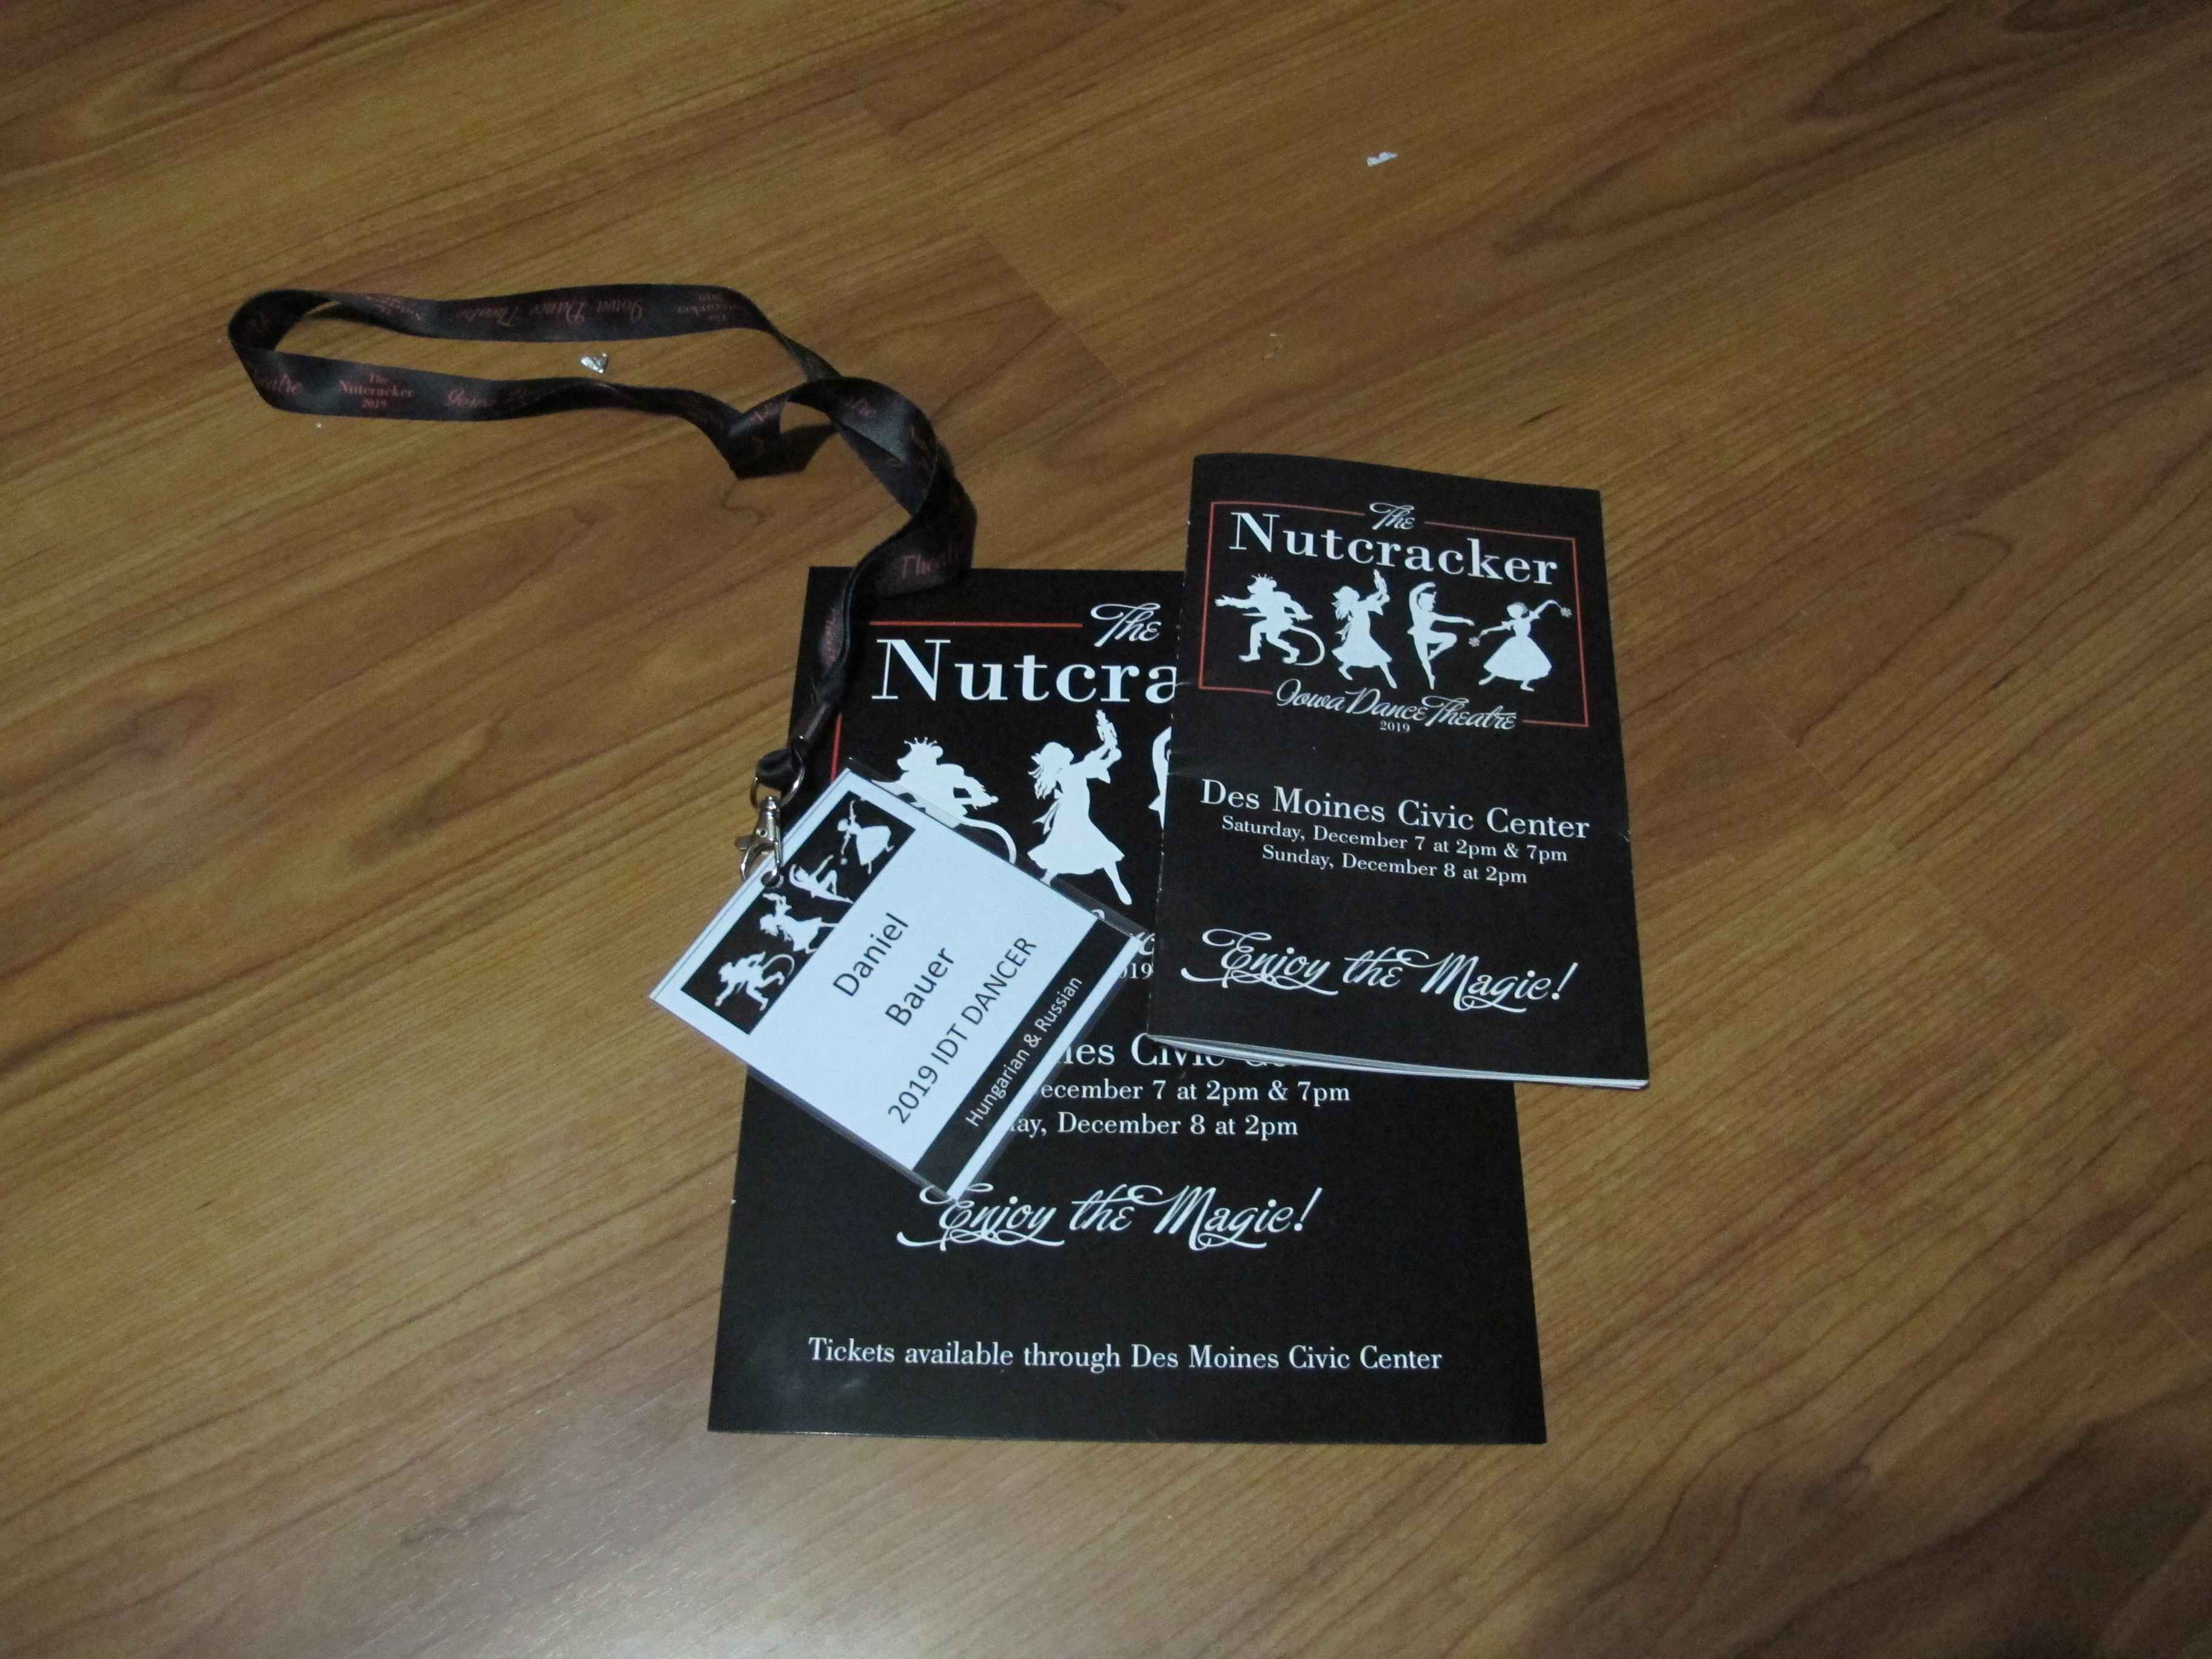 Dancer badge and nutcracker poster